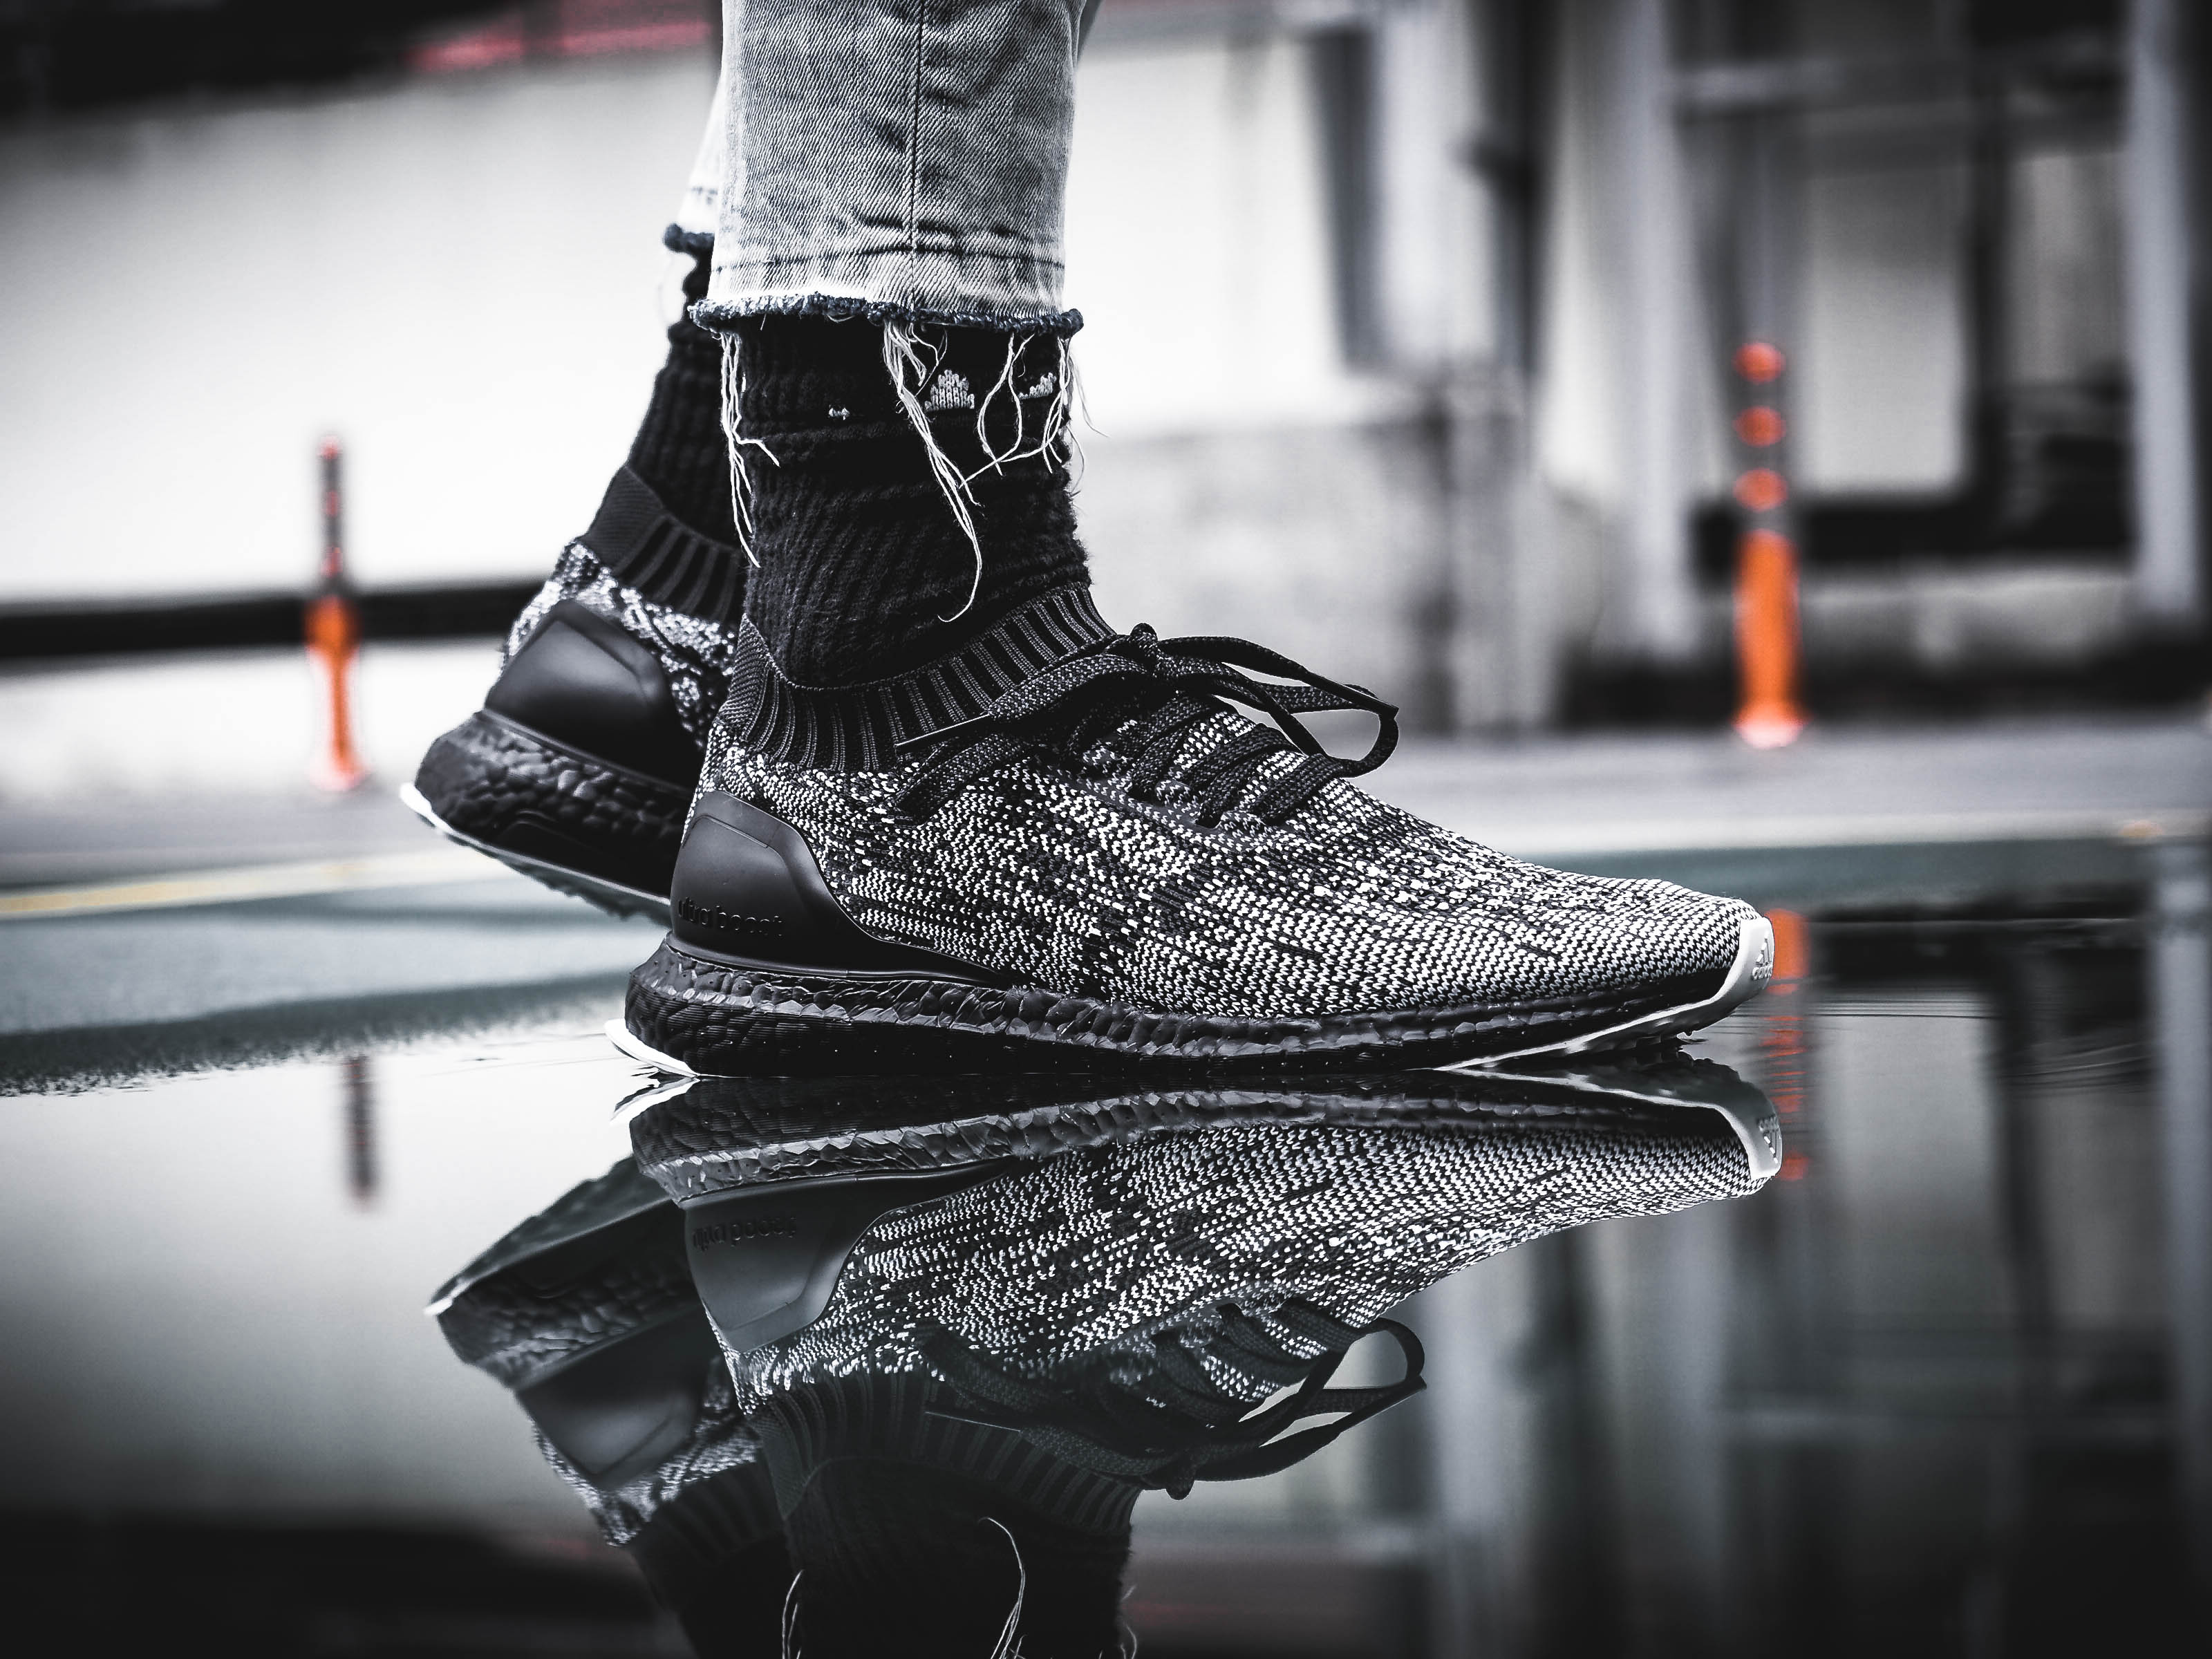 The Adidas Ultra Boost Uncaged Black